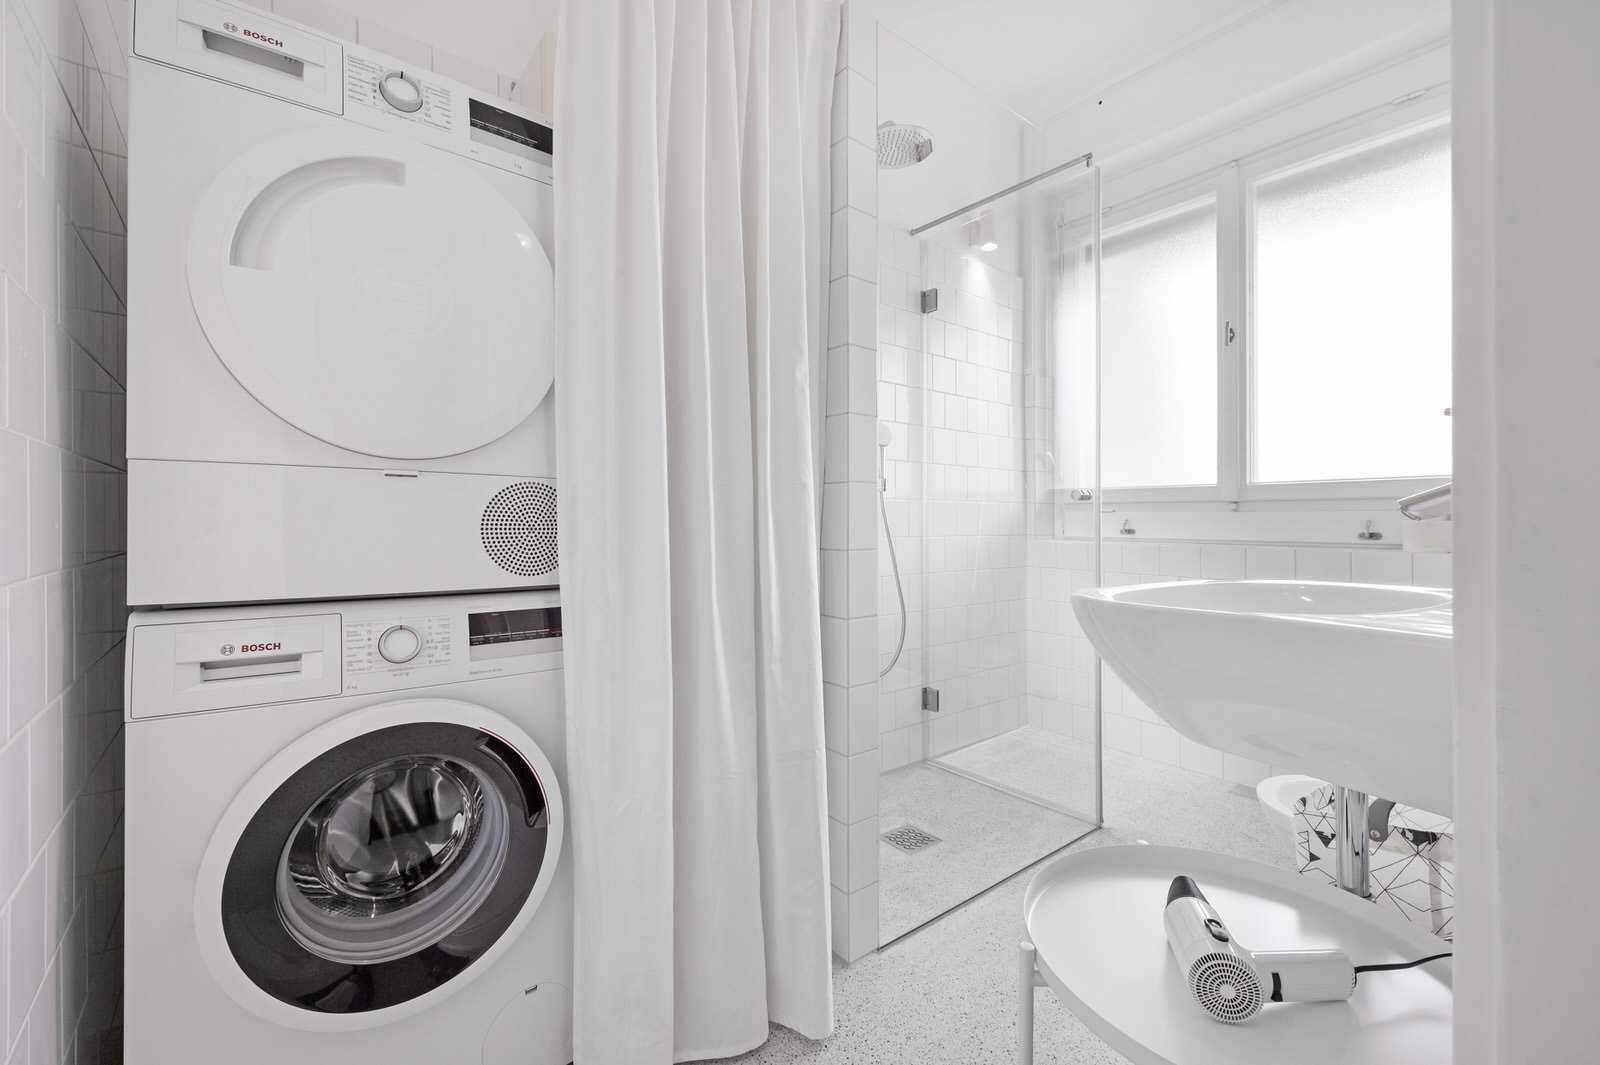 Modern bathroom with new appliances - washer and dryer